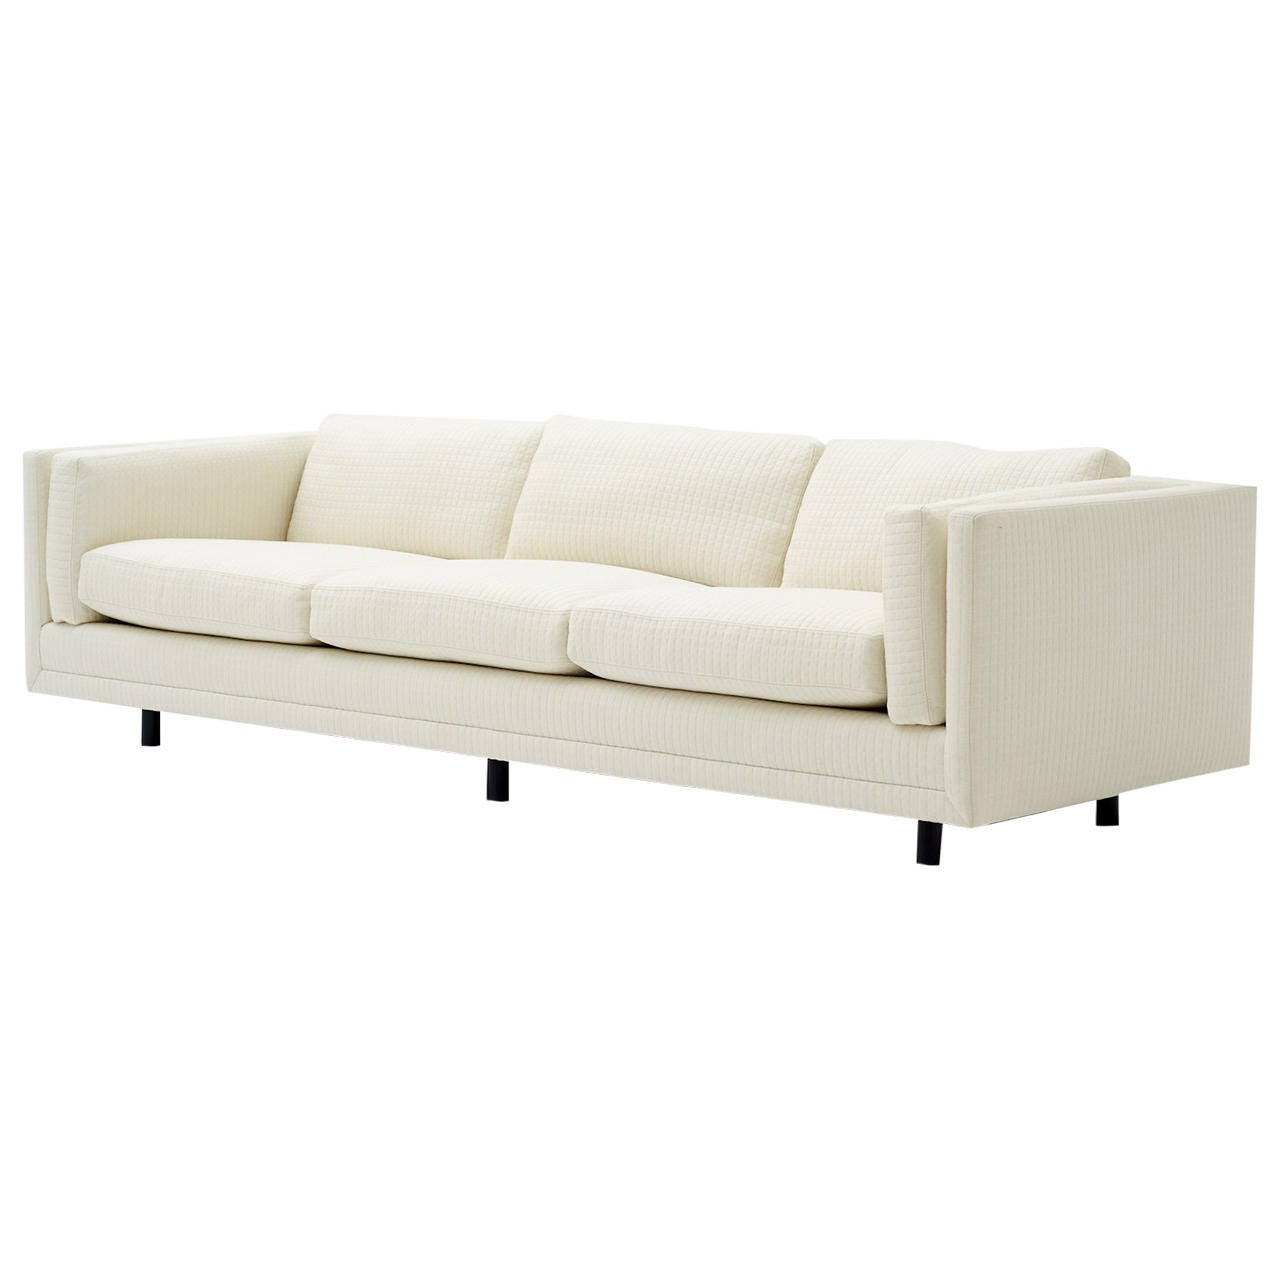 Sofa Sale Harveys Harvey Probber Tuxedo Sofa